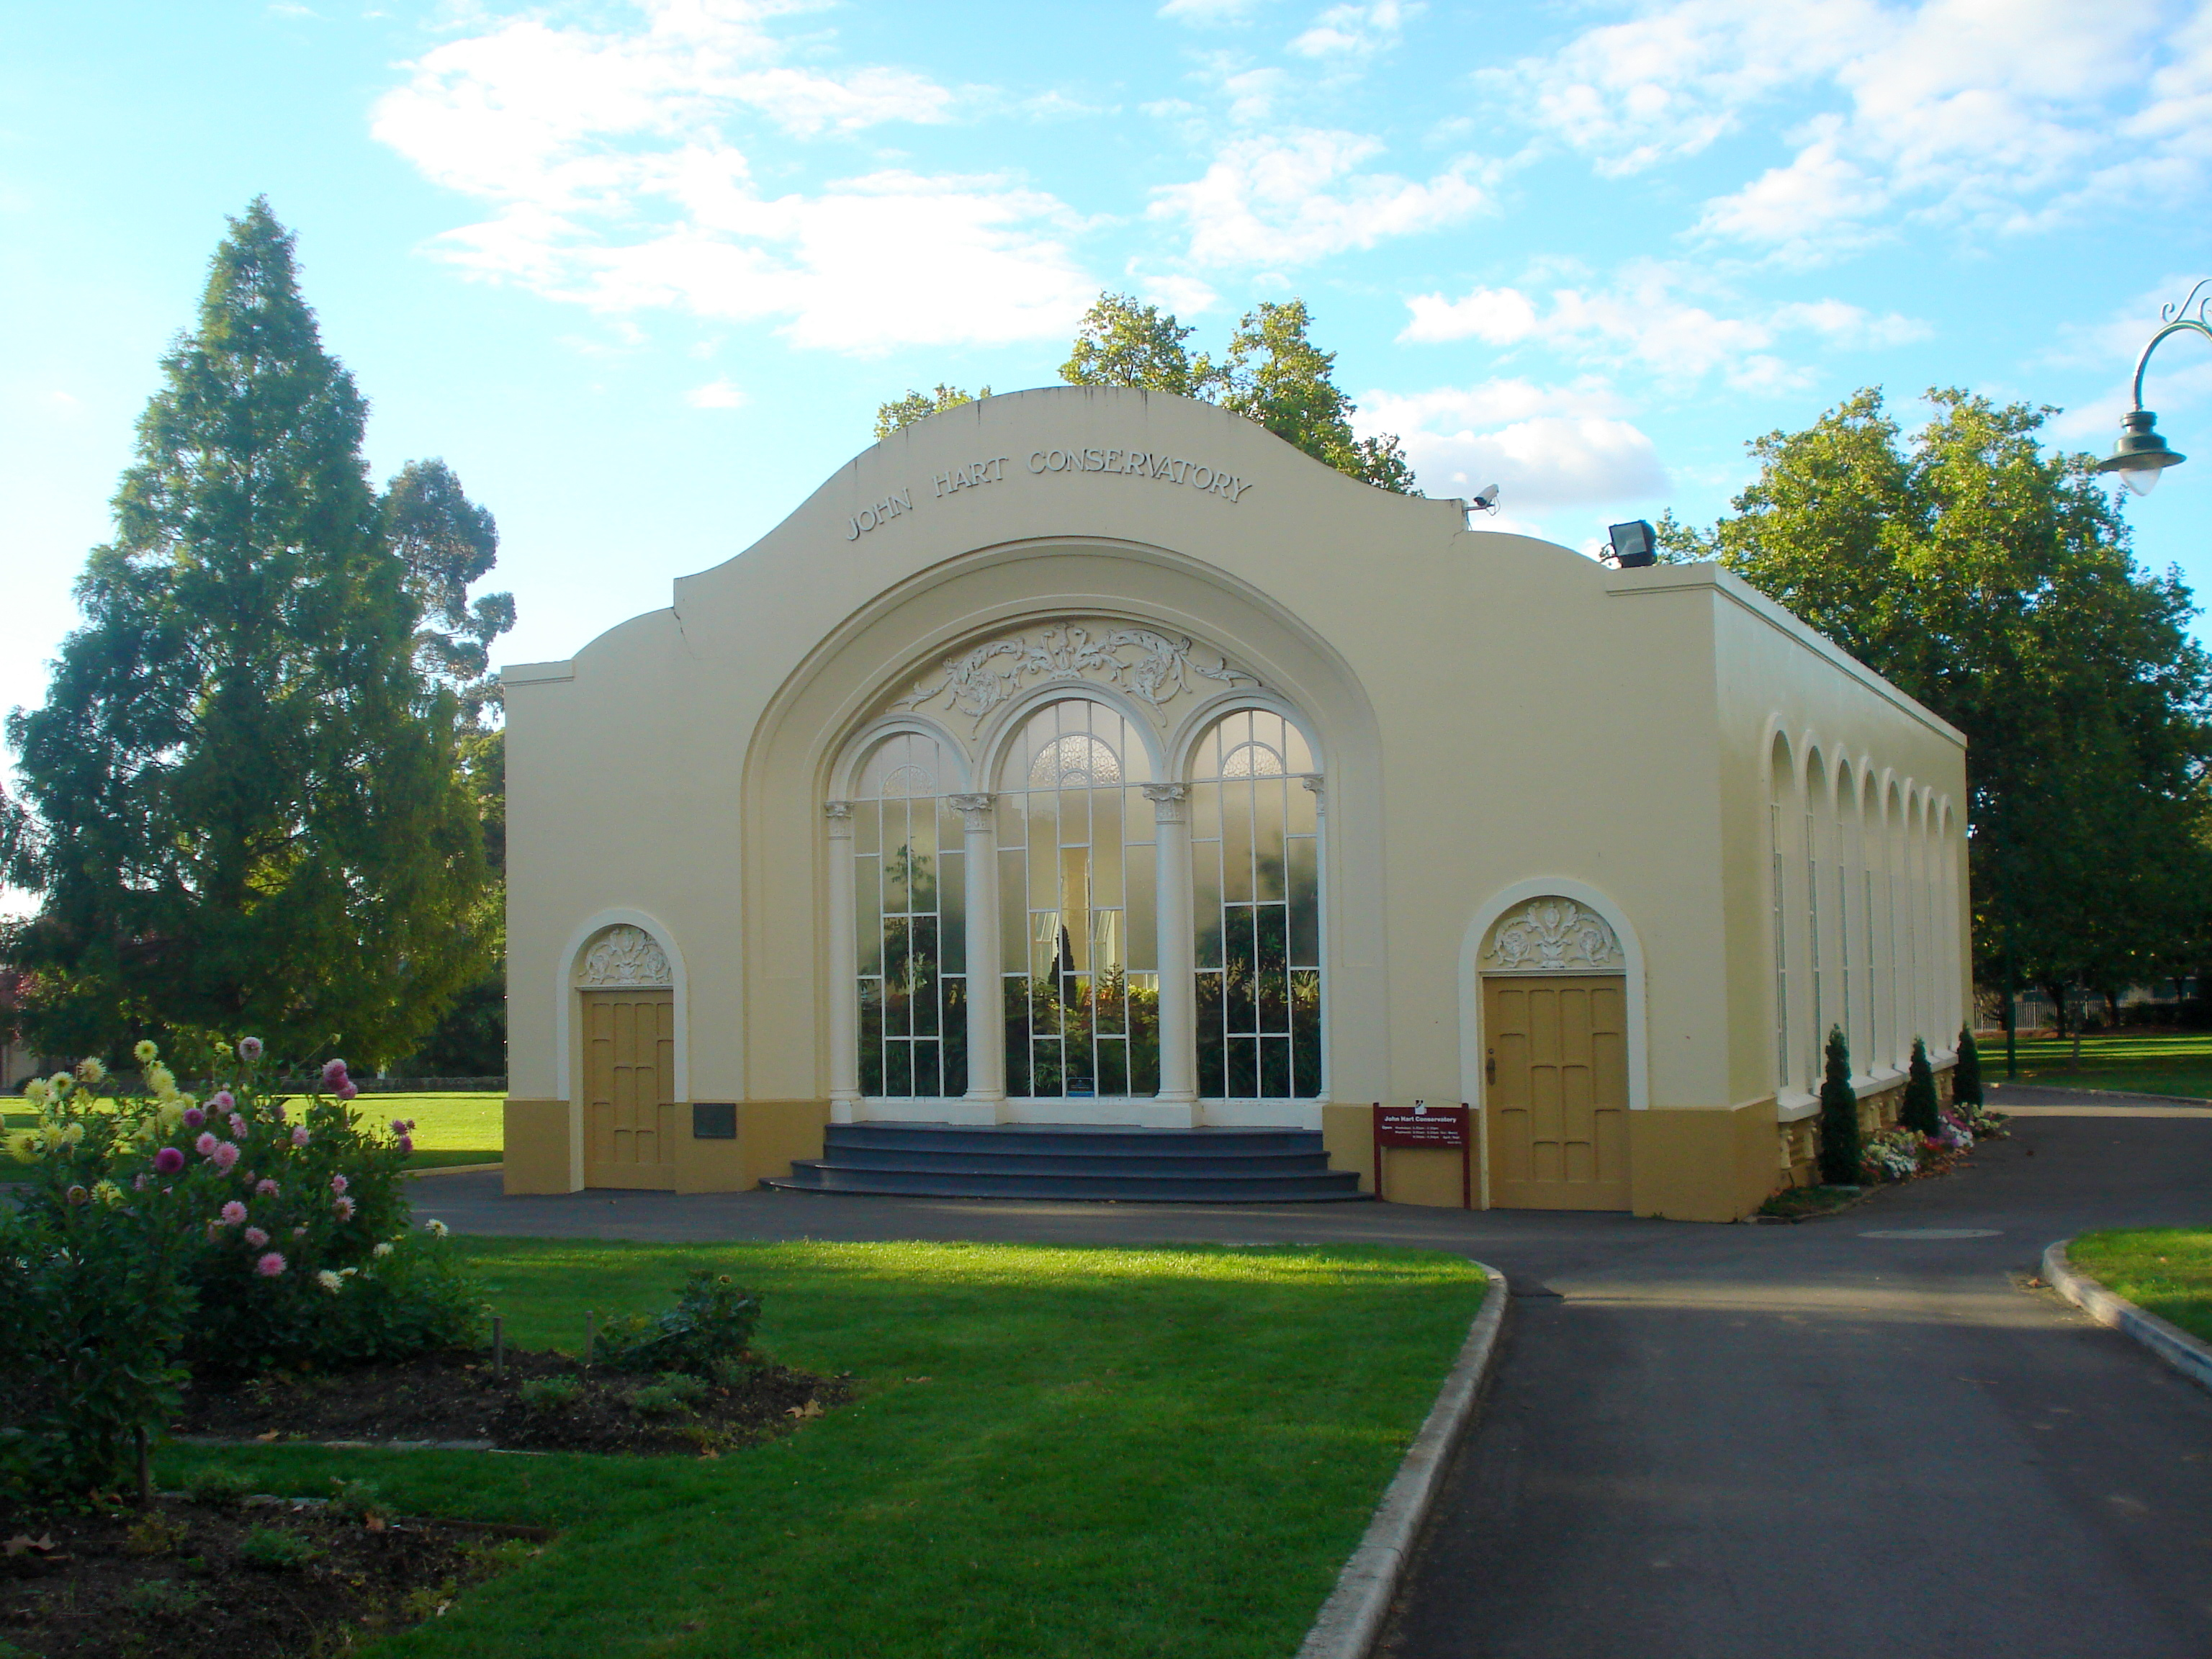 launceston-city-park-serre